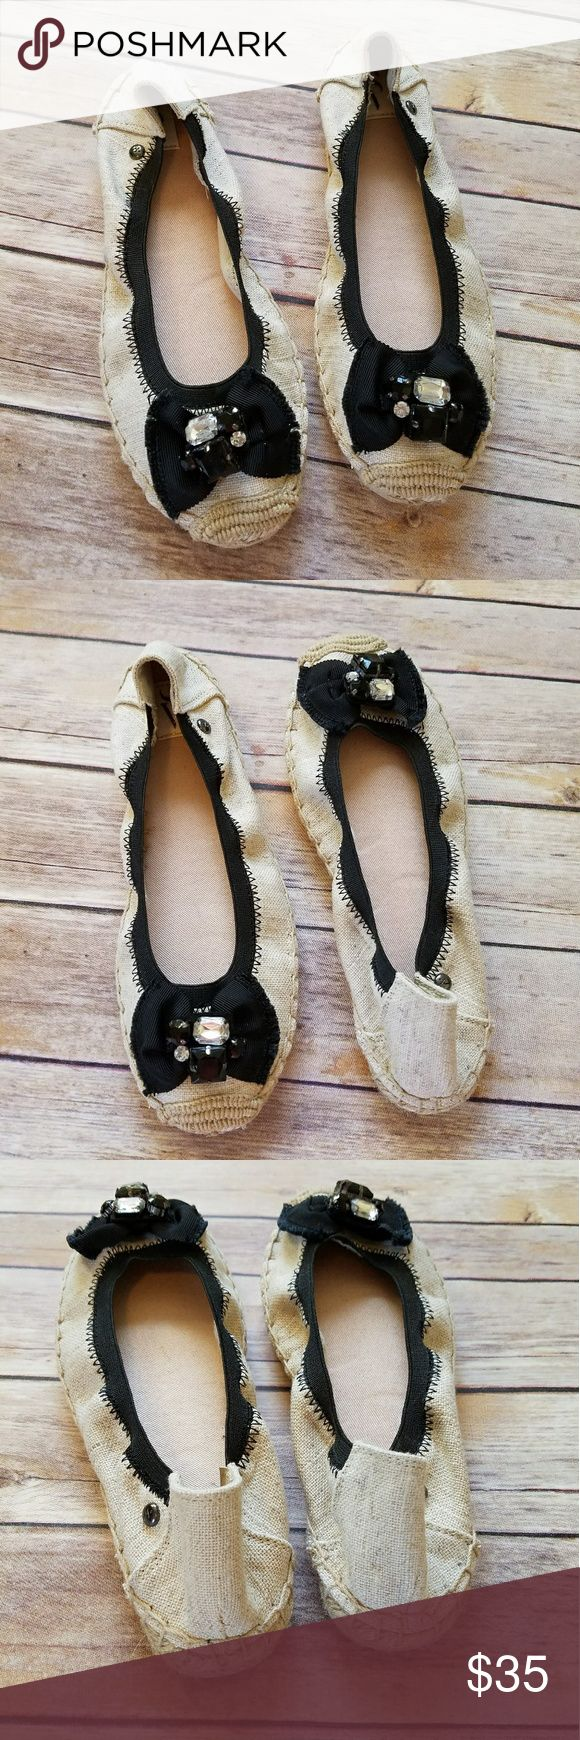 NWT Simply Vera Wang jewel bow tan flats sz 6 Size 6. Simply Vera Vera Wang tan and black flats. Pretty bow and jewel embellishments on the front. Stretchy black. New in box! Simply Vera Vera Wang Shoes Flats & Loafers